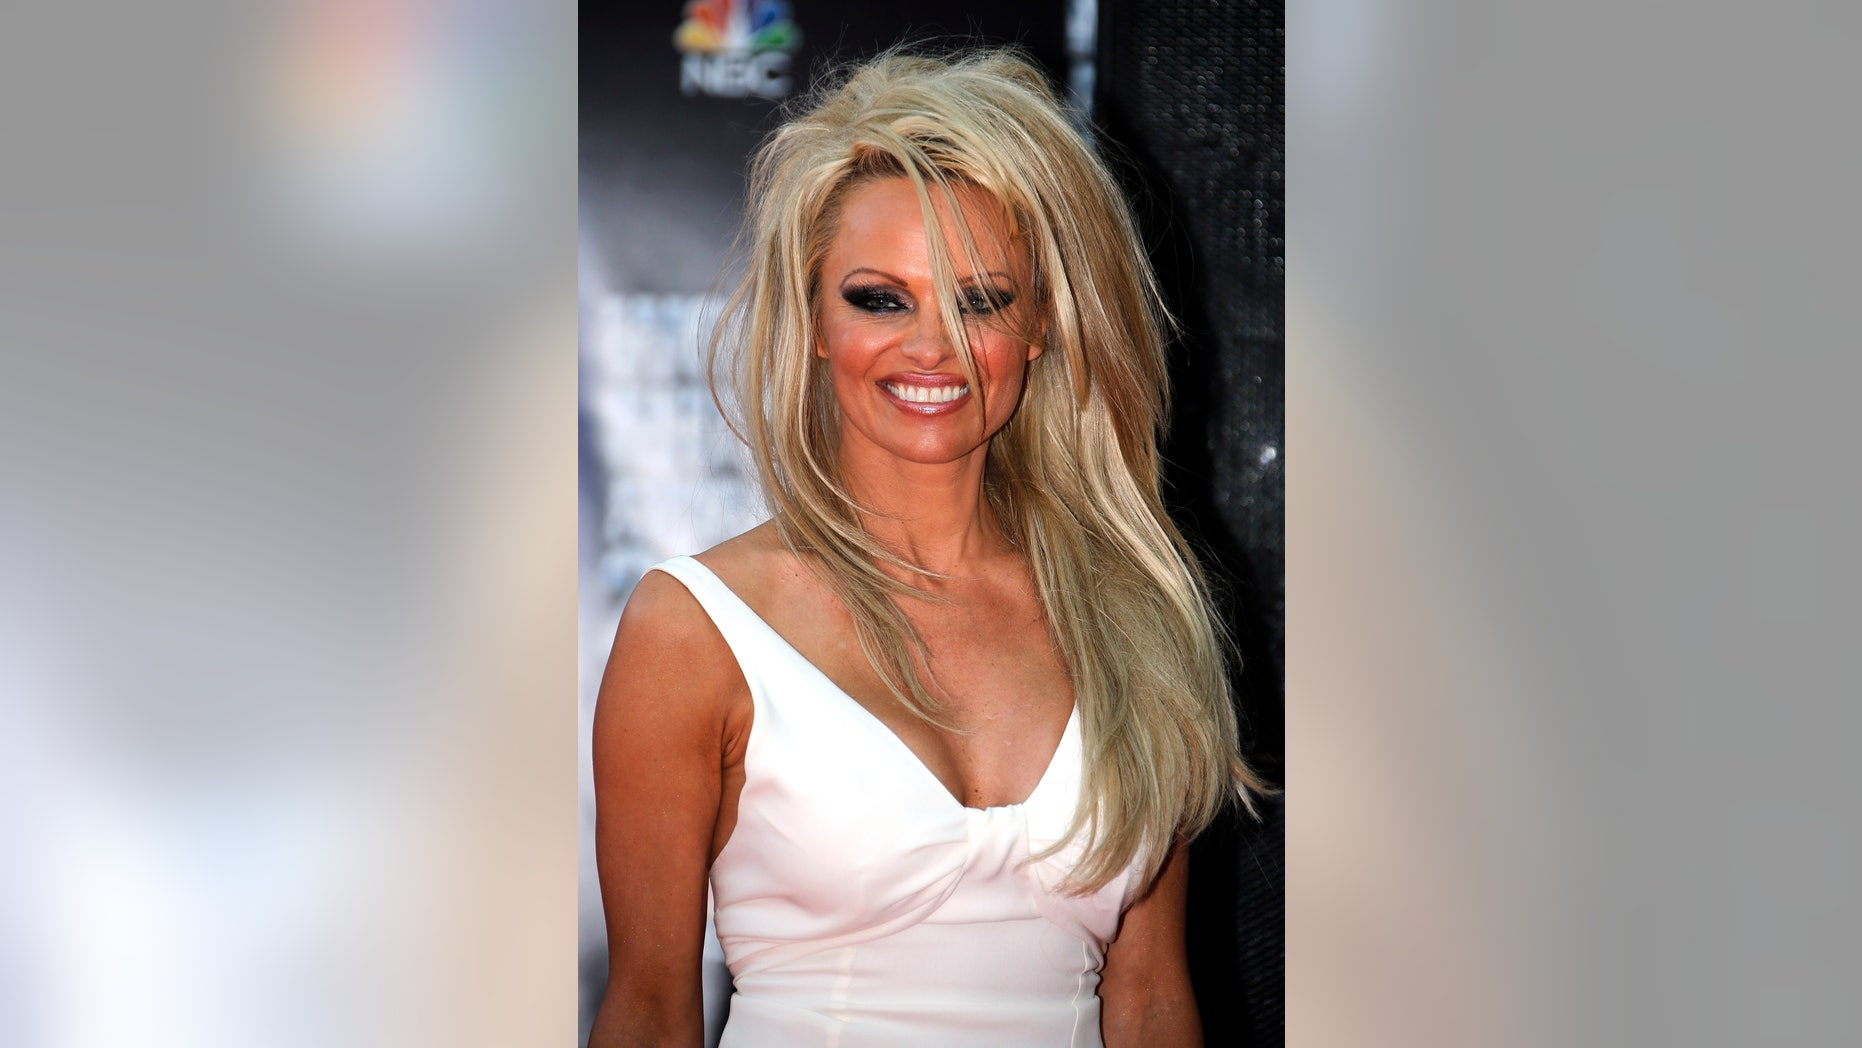 May 27, 2014. Pamela Anderson arrives to attend the World Music Awards in Monte Carlo.